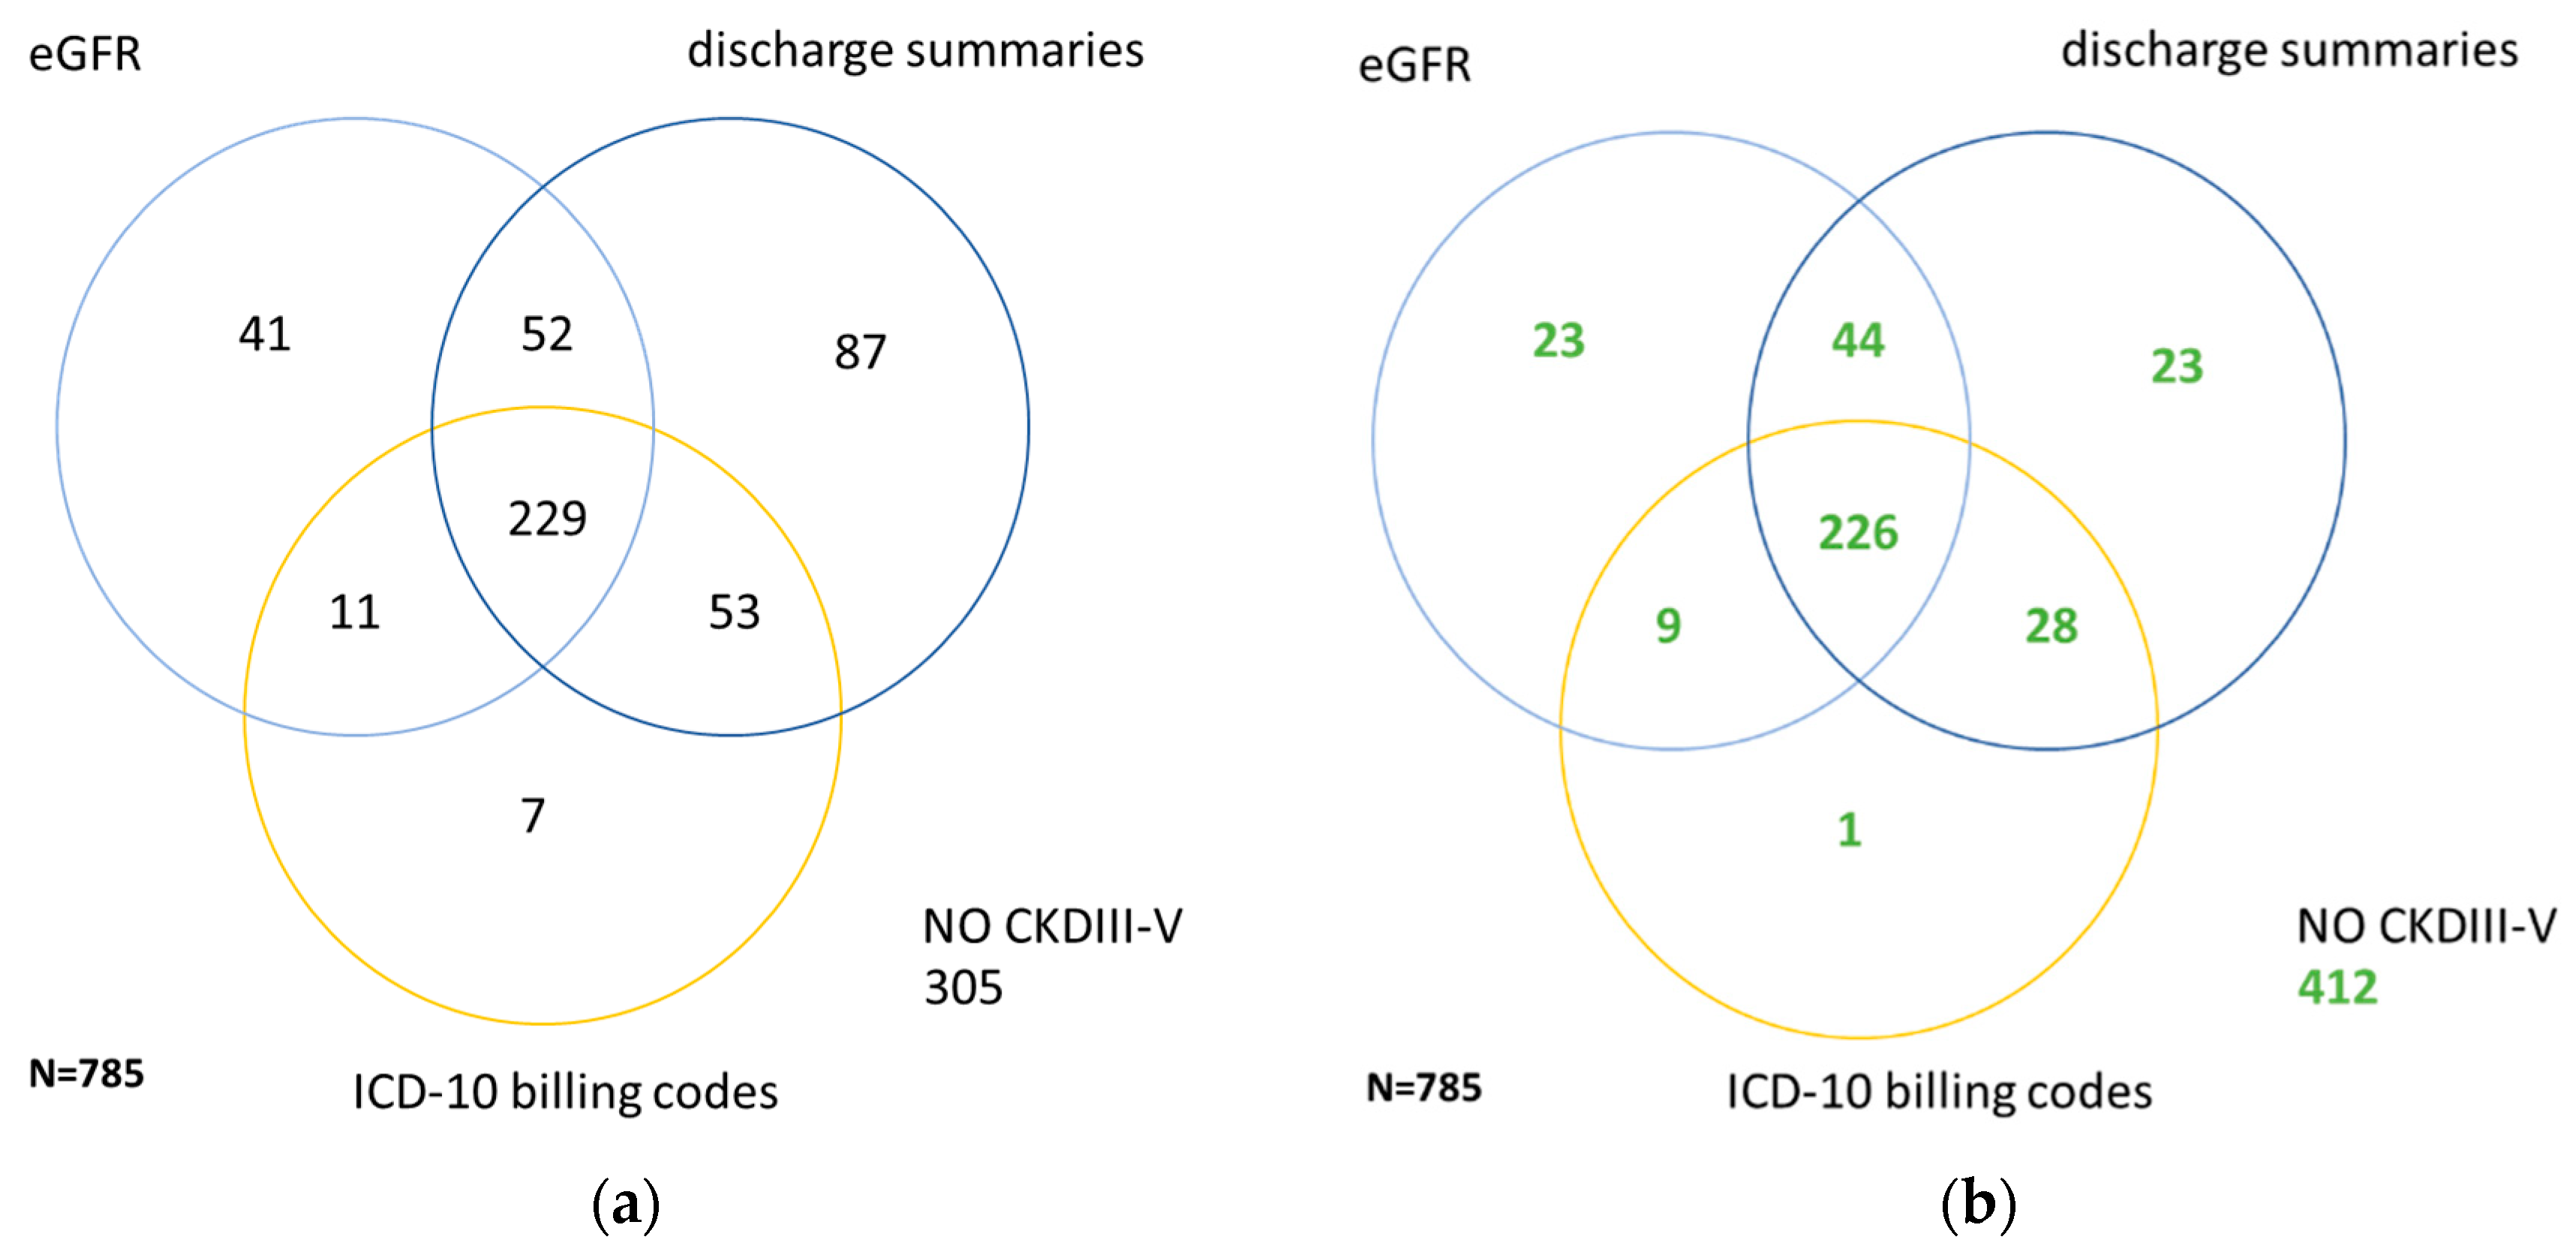 Jcm Free Full Text Optimized Identification Of Advanced Chronic Kidney Disease And Absence Of Kidney Disease By Combining Different Electronic Health Data Resources And By Applying Machine Learning Strategies